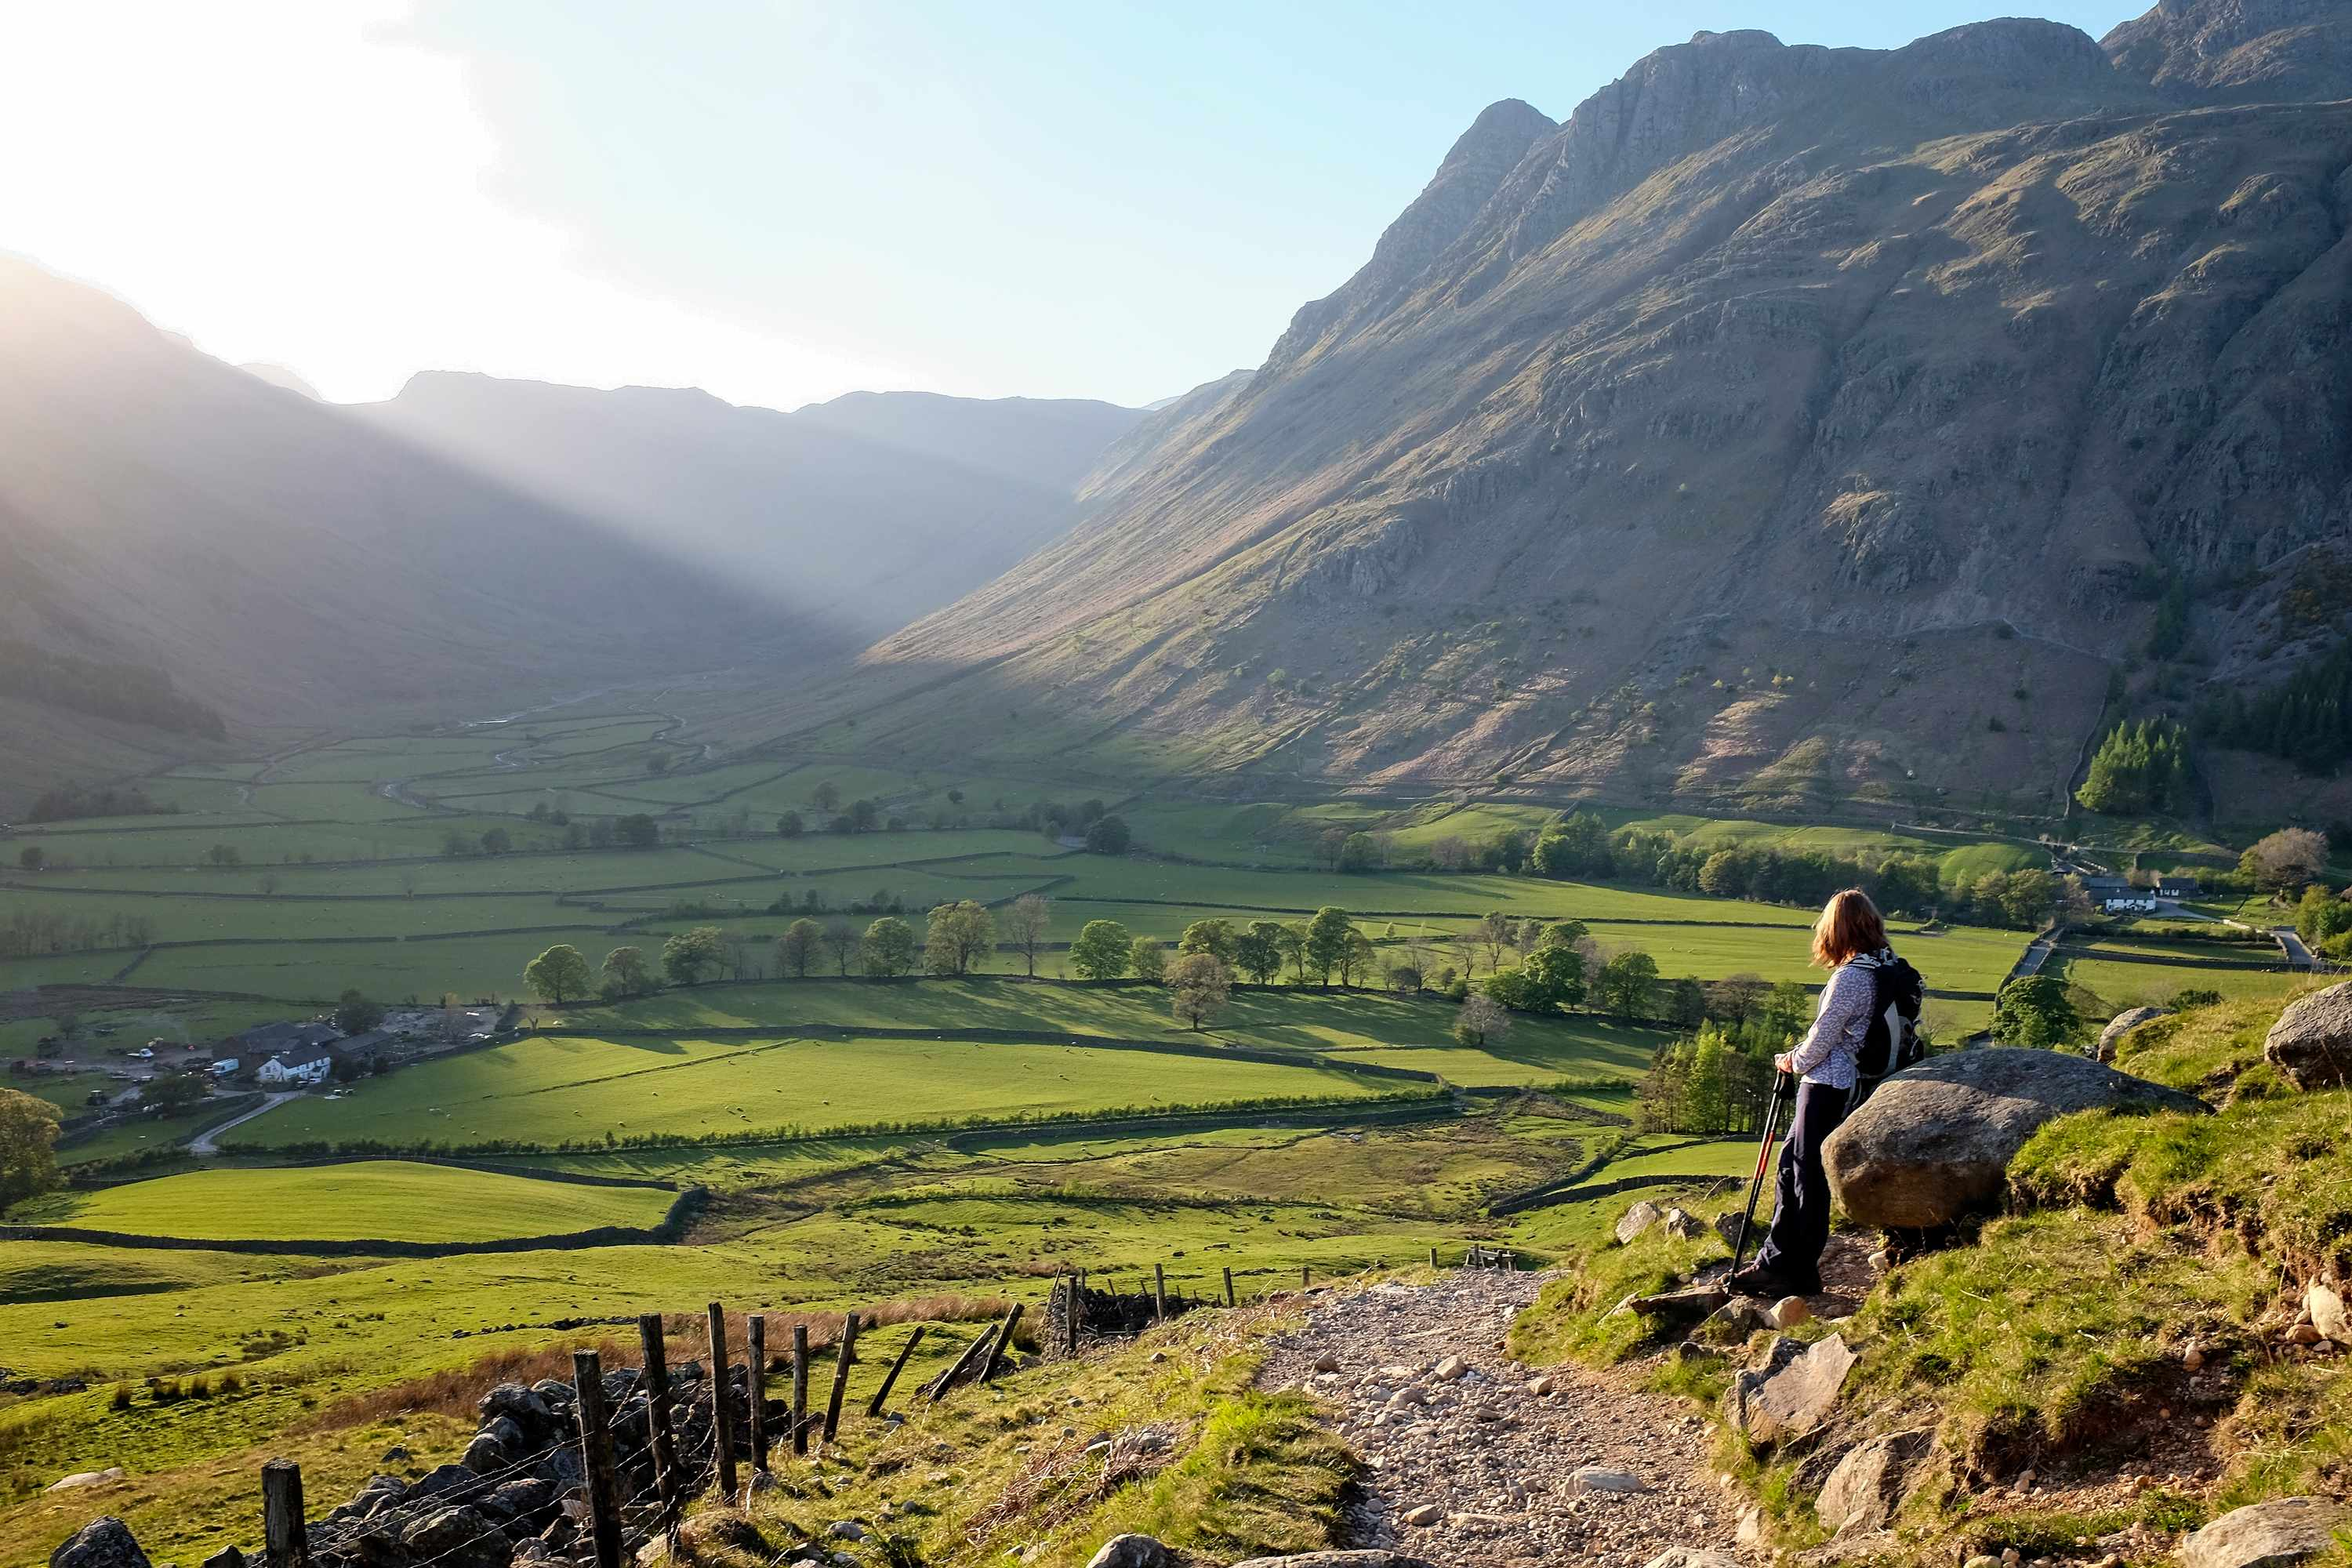 Sunlit valley and hillwalker; English Lake District, U.K